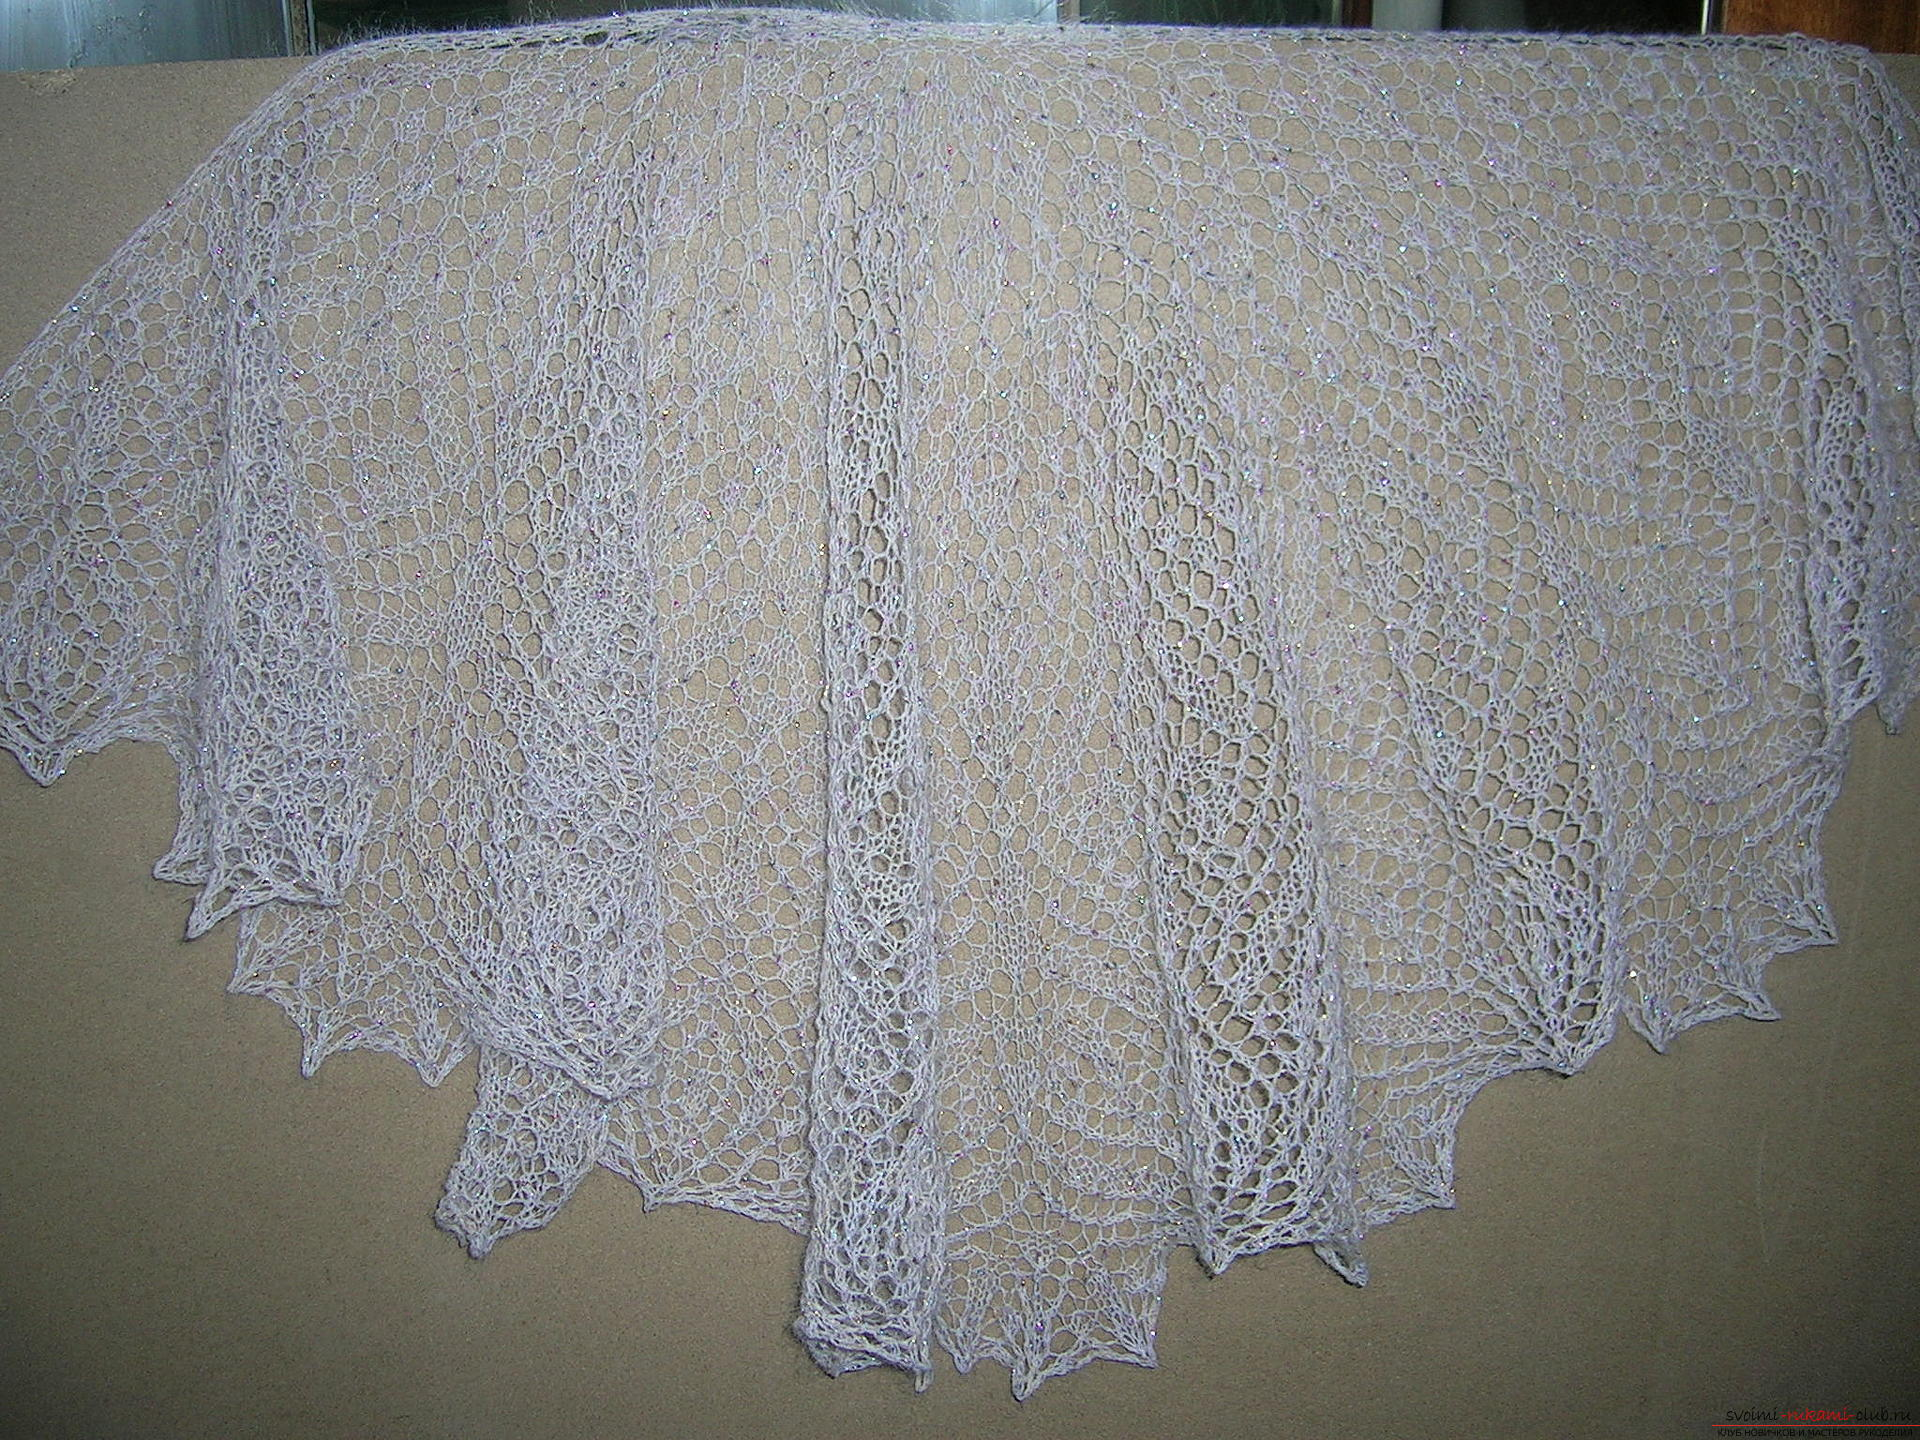 Description knitting the openwork white shawls with knitting needles. Photo №1